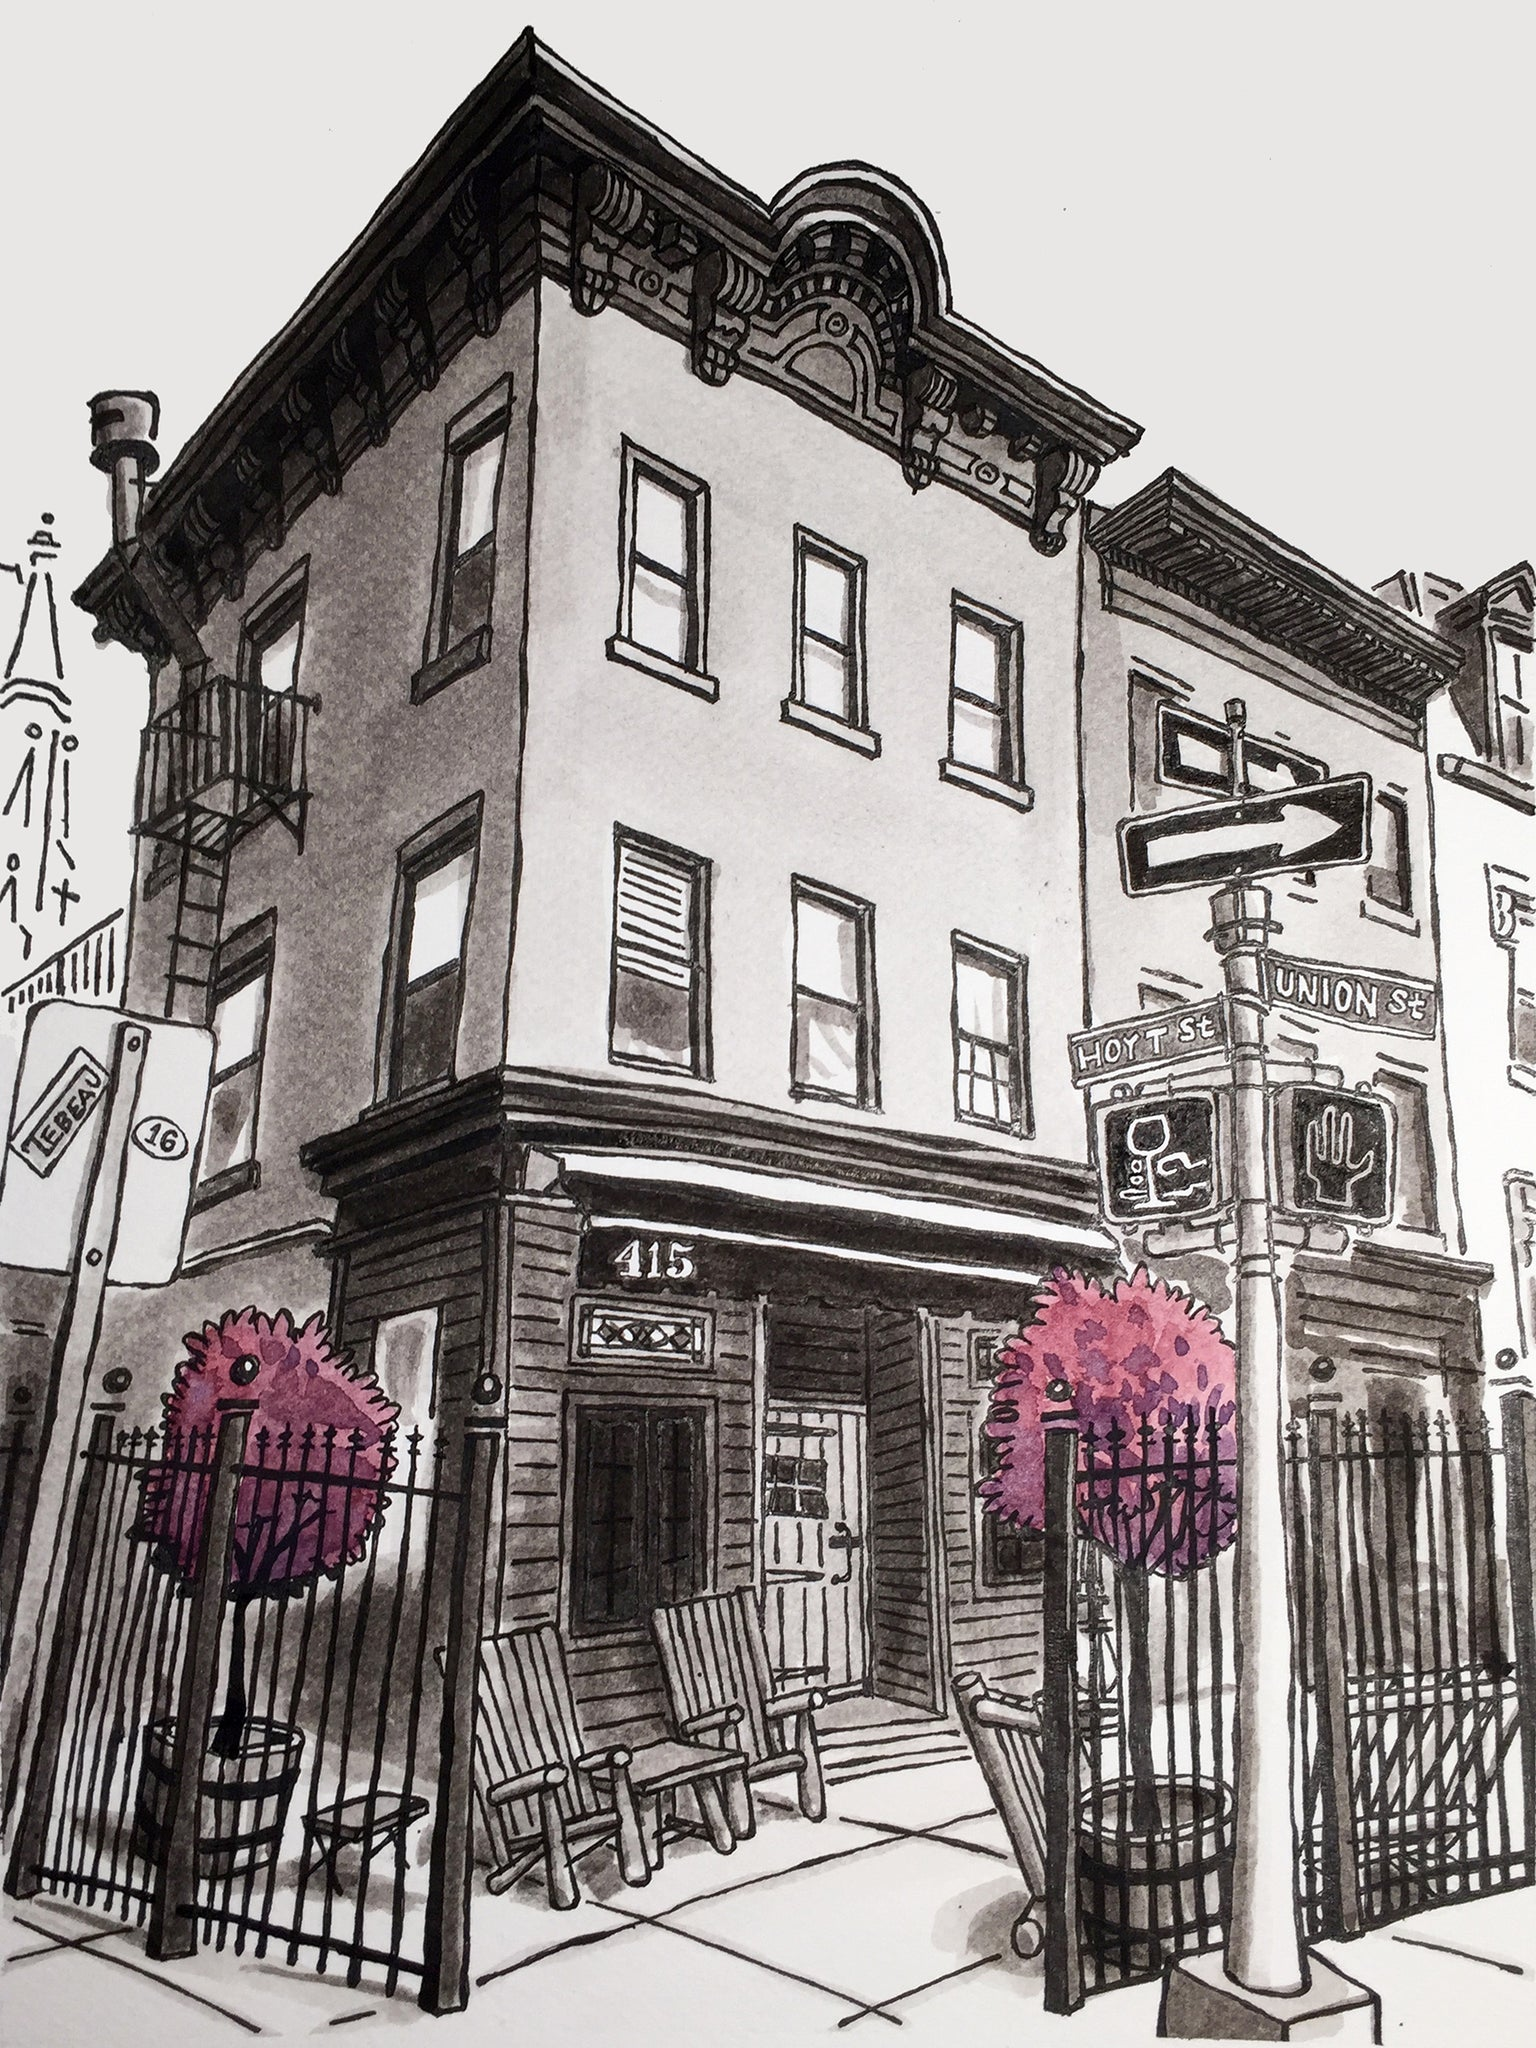 Black Mountain Wine House of Brooklyn, New York signed prints. (ships free in the US)